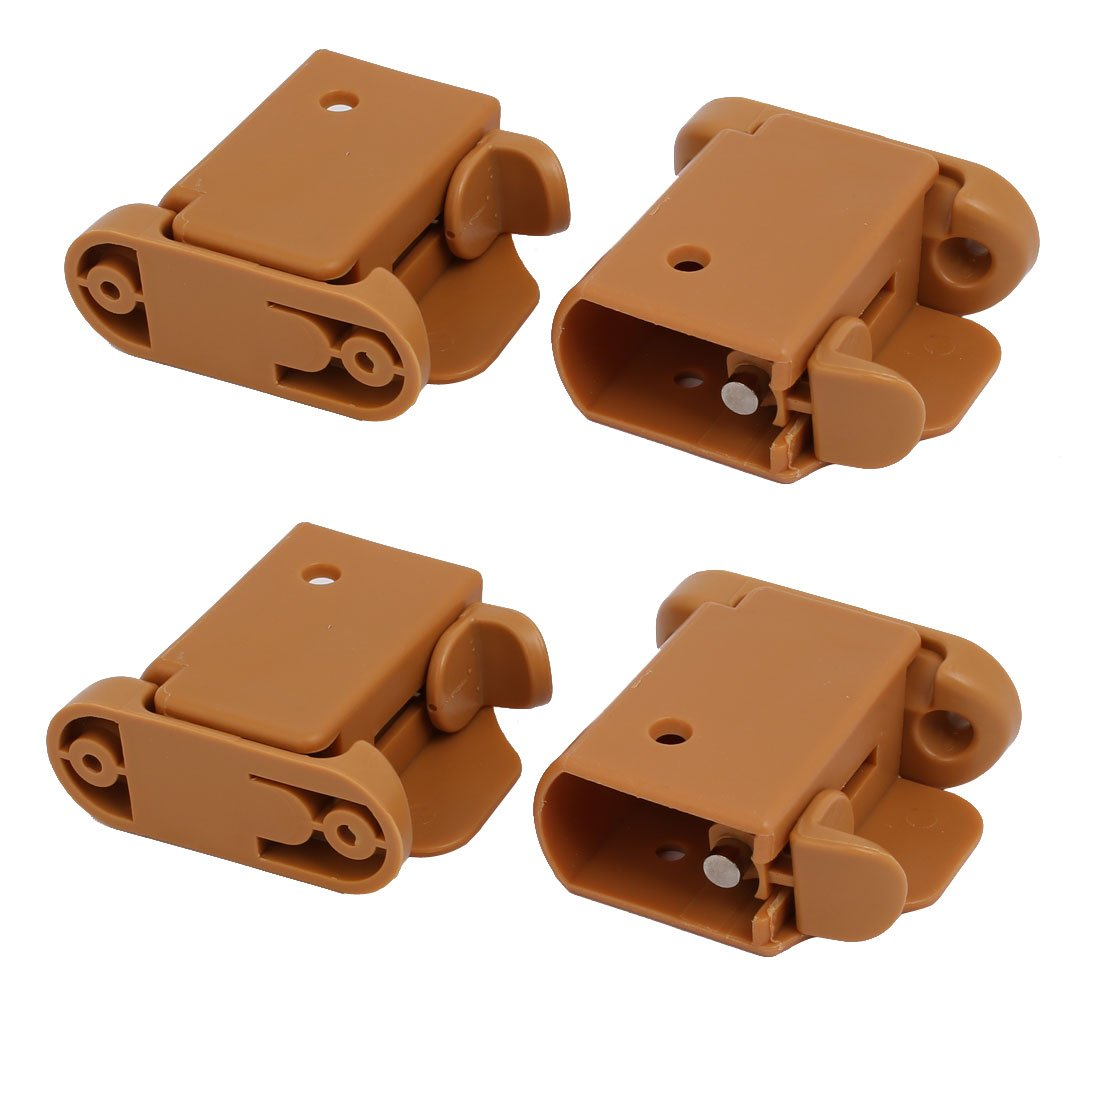 uxcell 21mmx35mm Plastic Left Right Side Guardrail Rail Buckle 2 Sets Brown w Spring